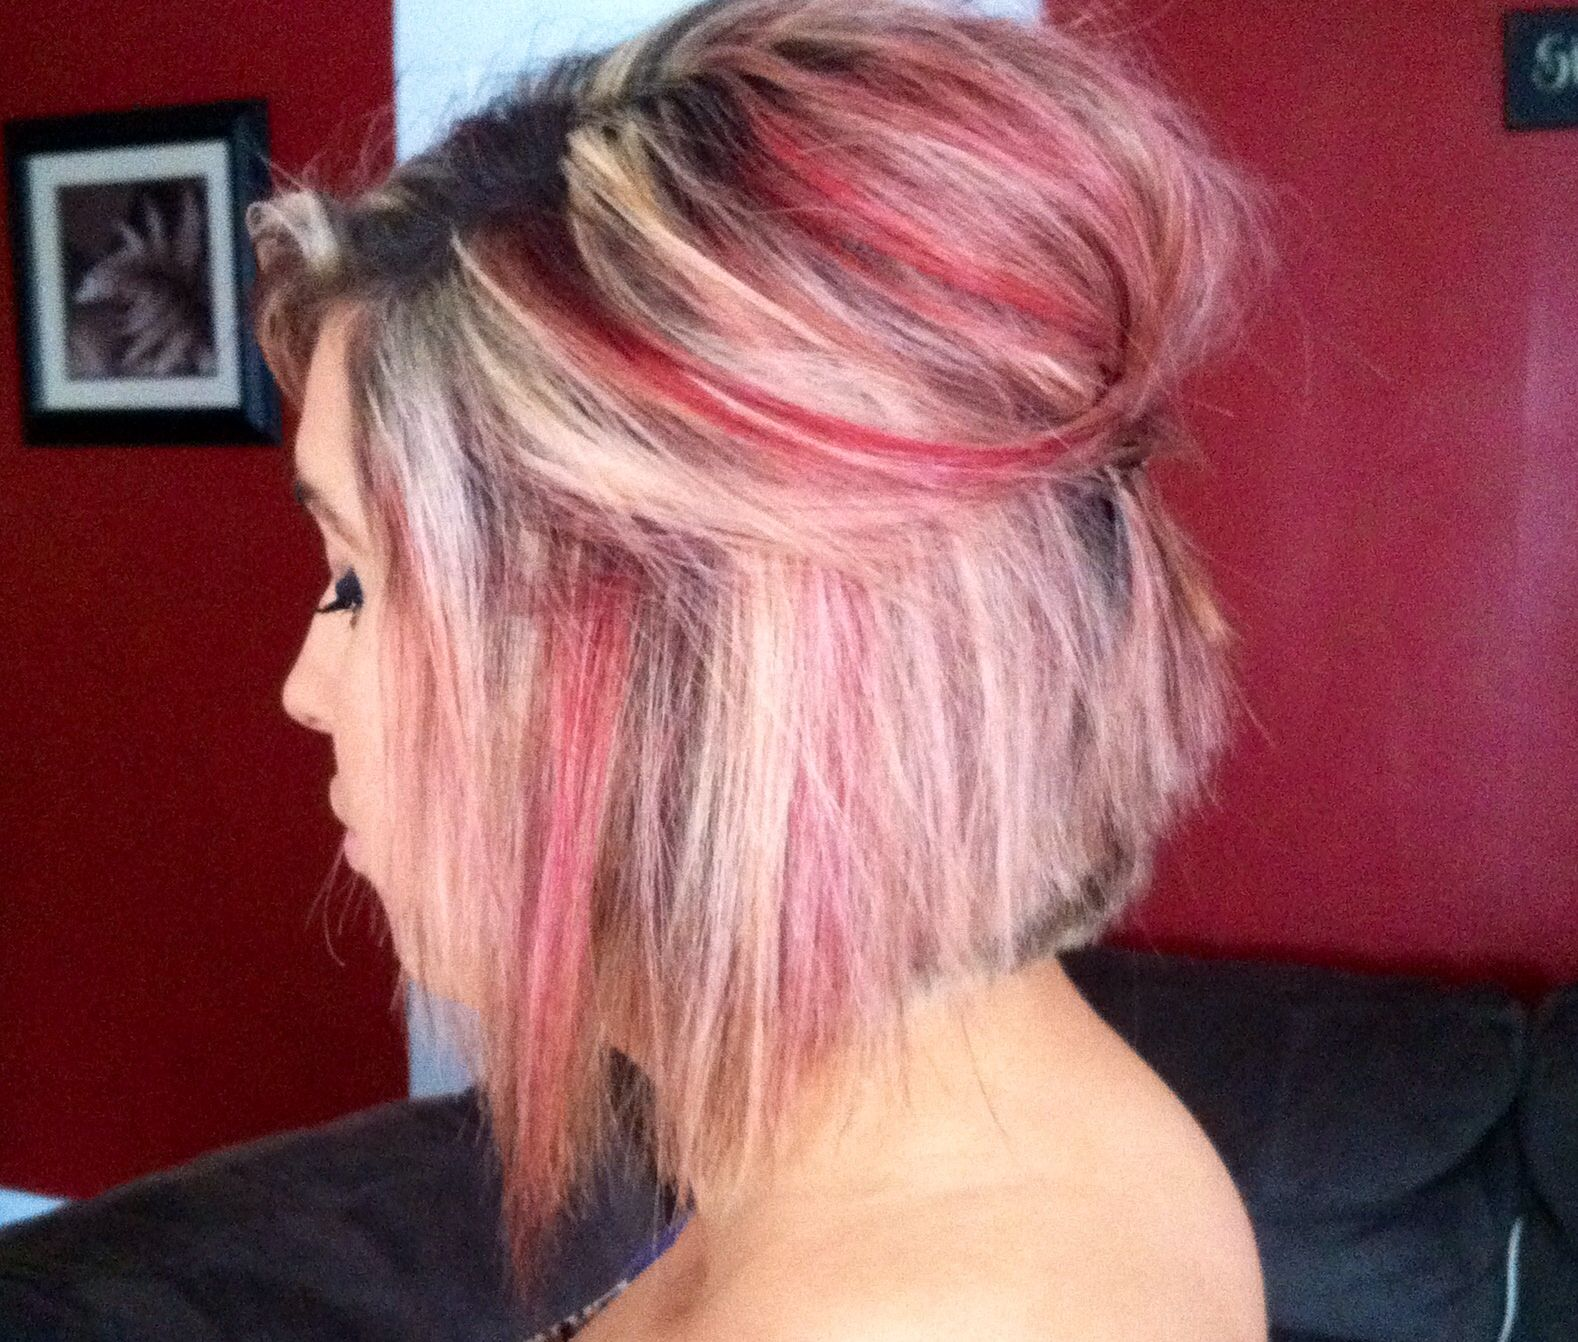 Heavy blonde foils with red highlights beautyubrains pinterest